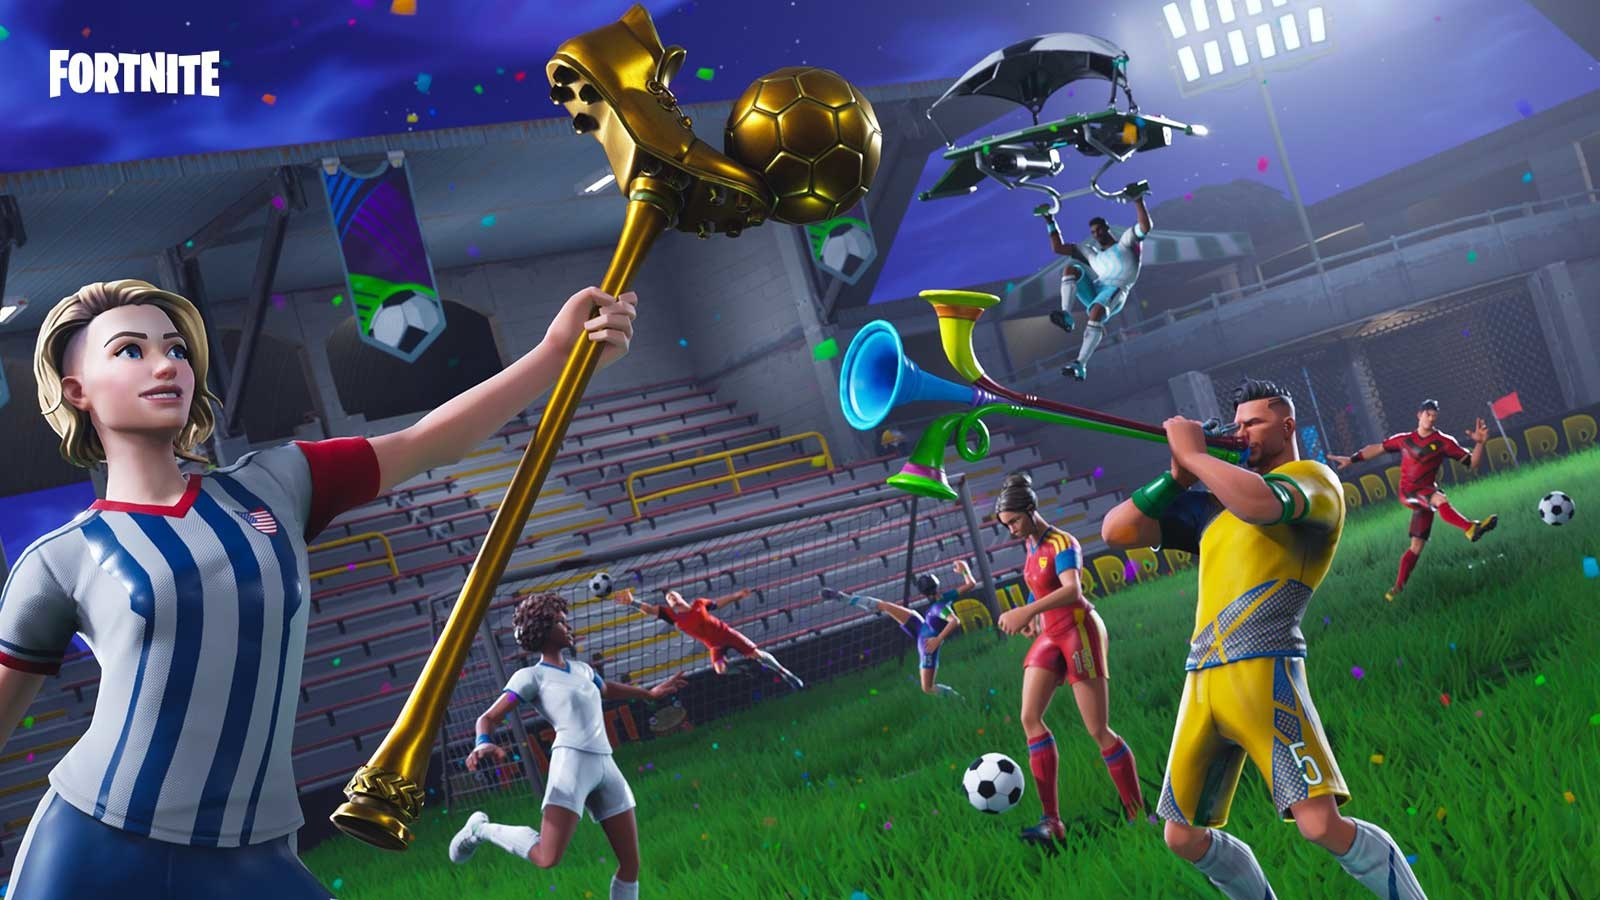 Fortnite Celebrates The World Cup With A Stadium And New Items Techradar